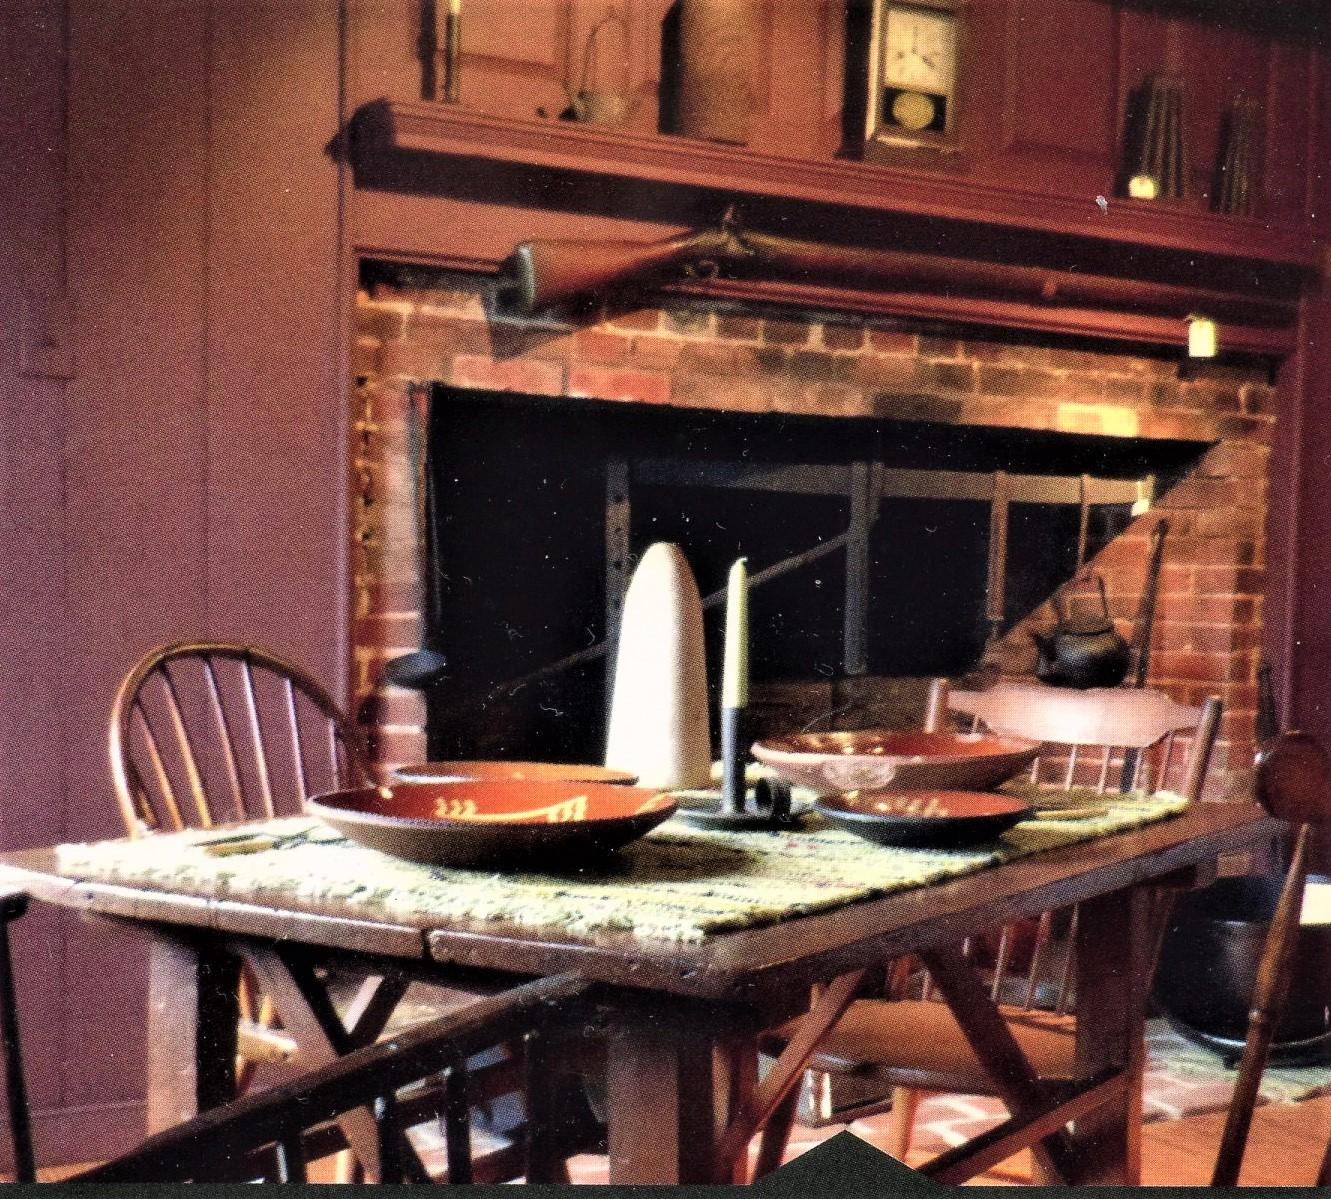 Brown table set for dinner with candles in historic building